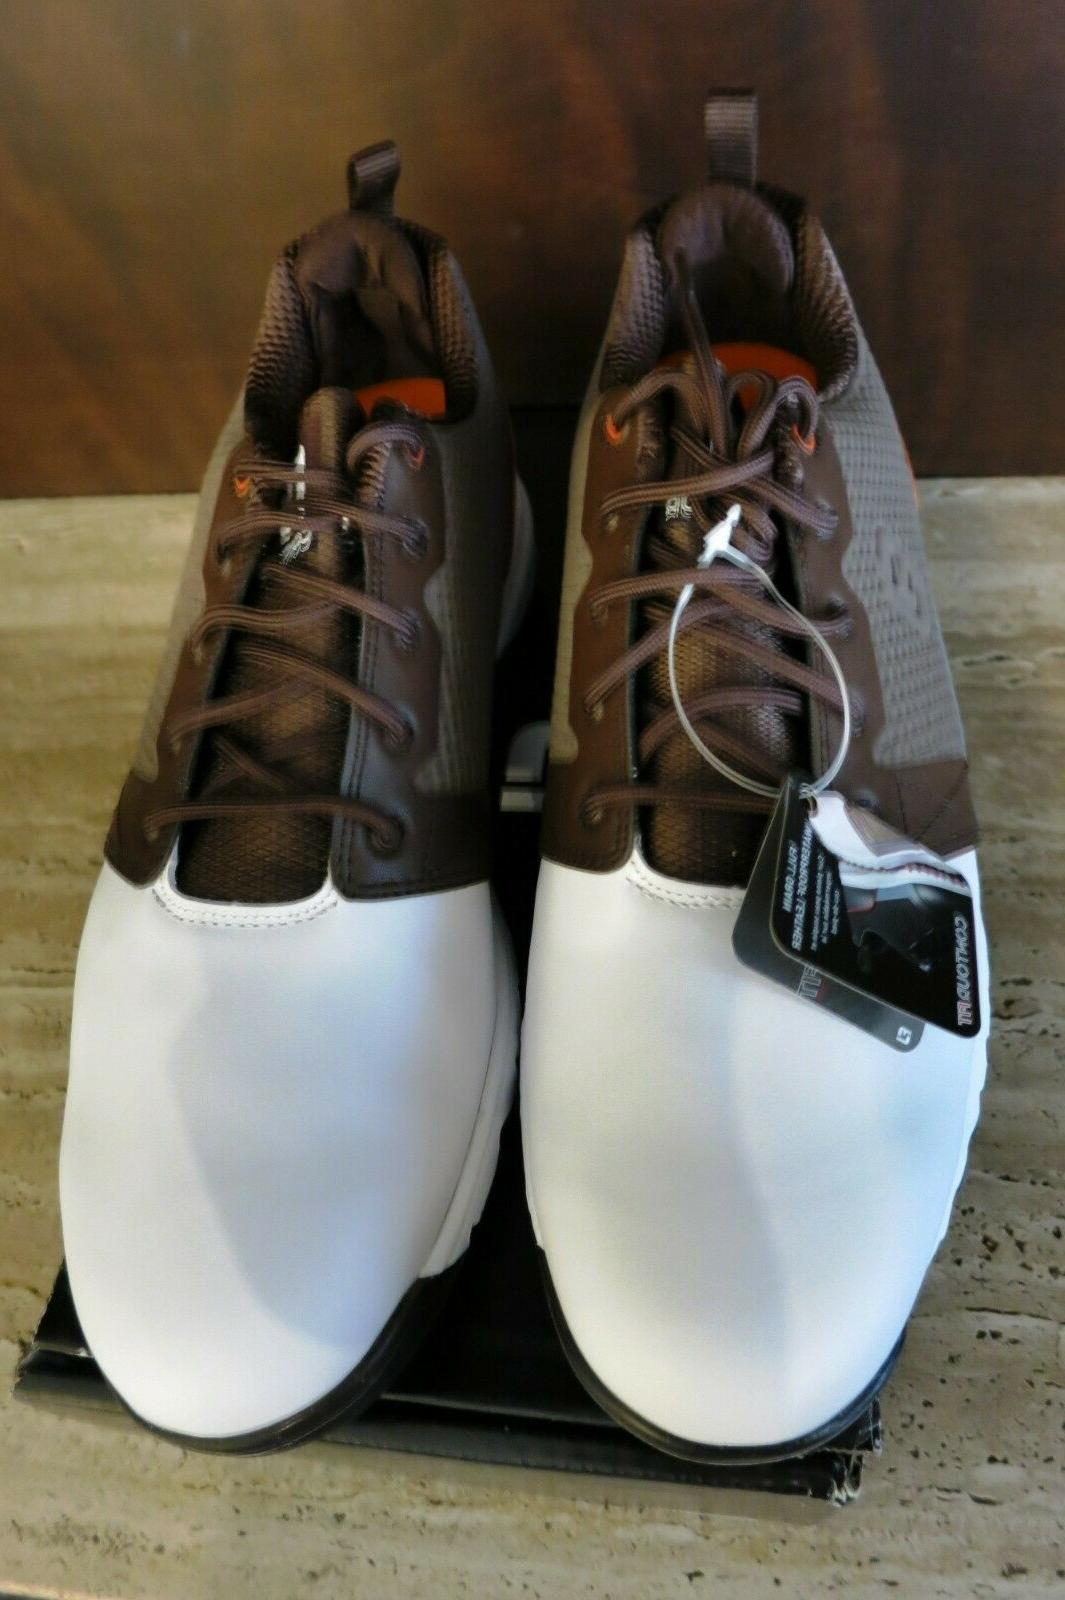 FootJoy Contour Fit Golf Shoes Size 10.5